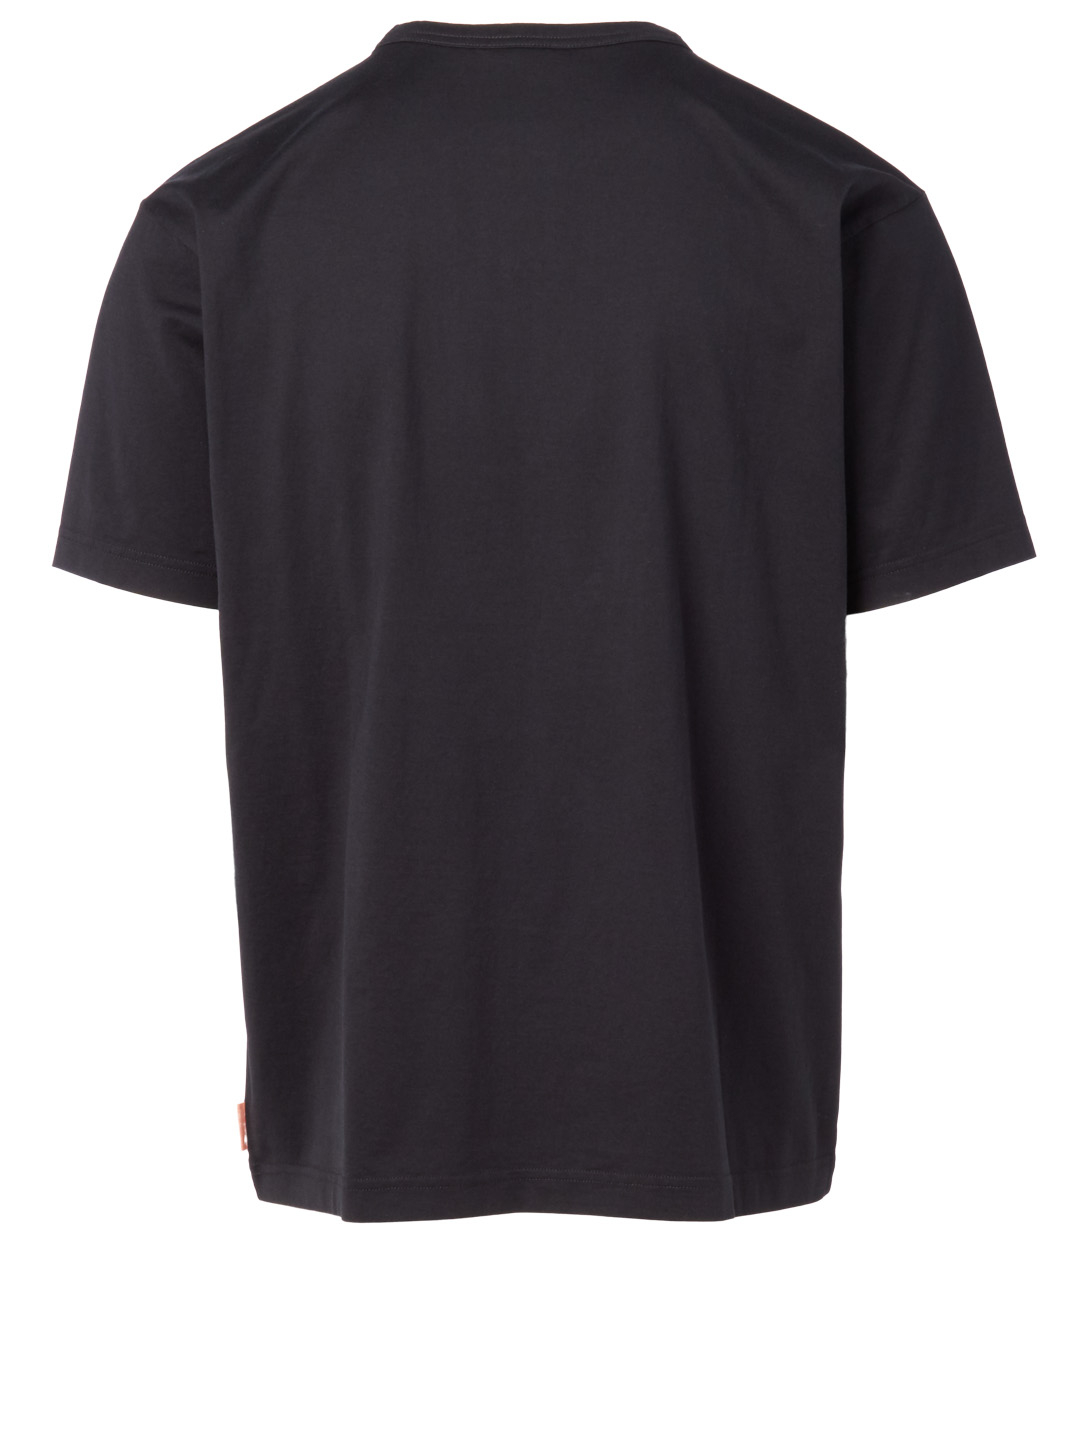 ACNE STUDIOS Cotton T-Shirt Men's Black